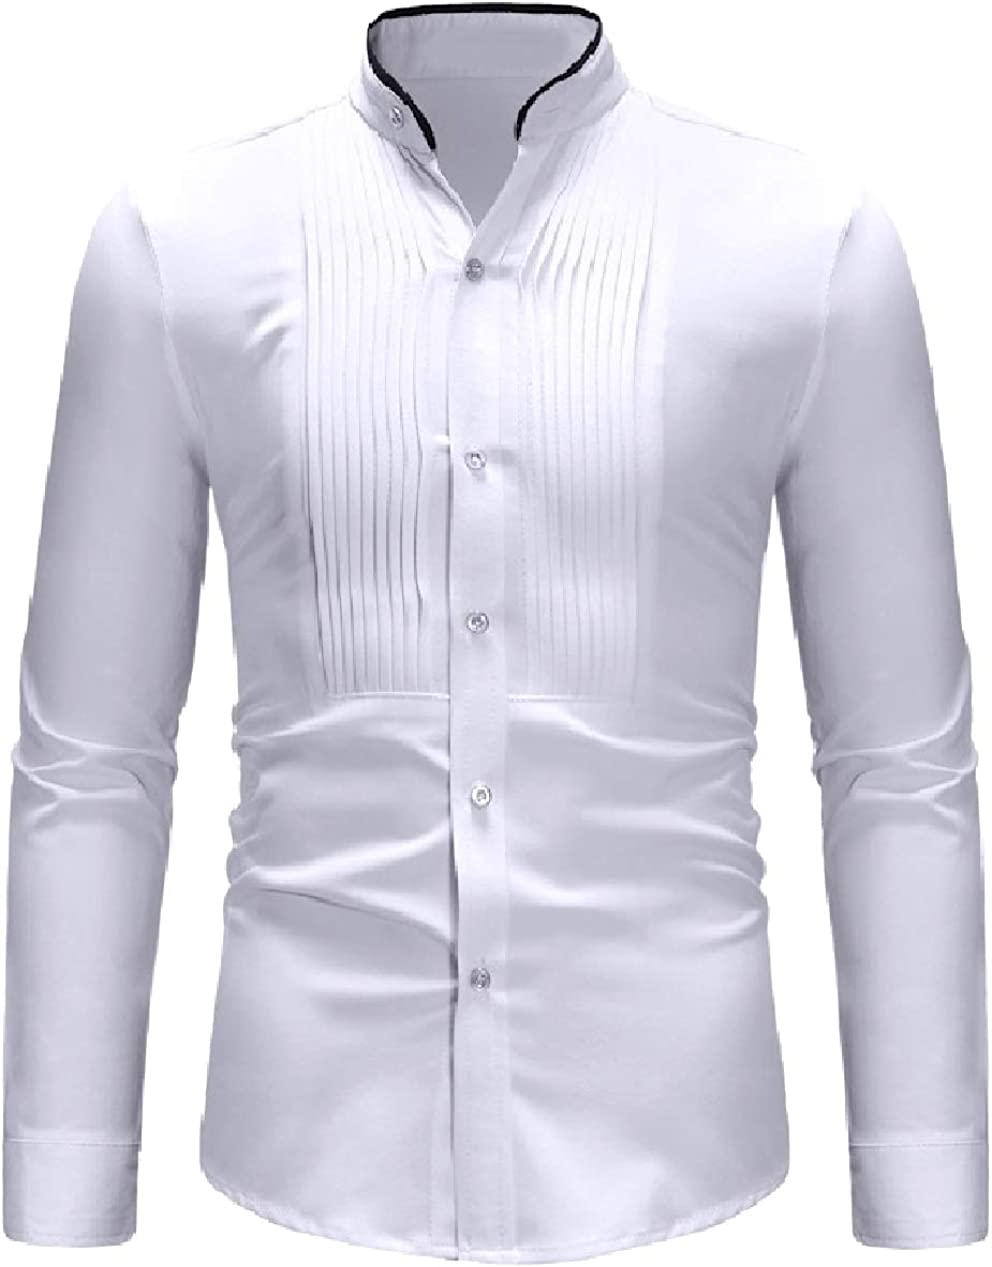 Winwinus Mens Stylish No-Iron Slim Fitting Long Sleeve Western Shirt